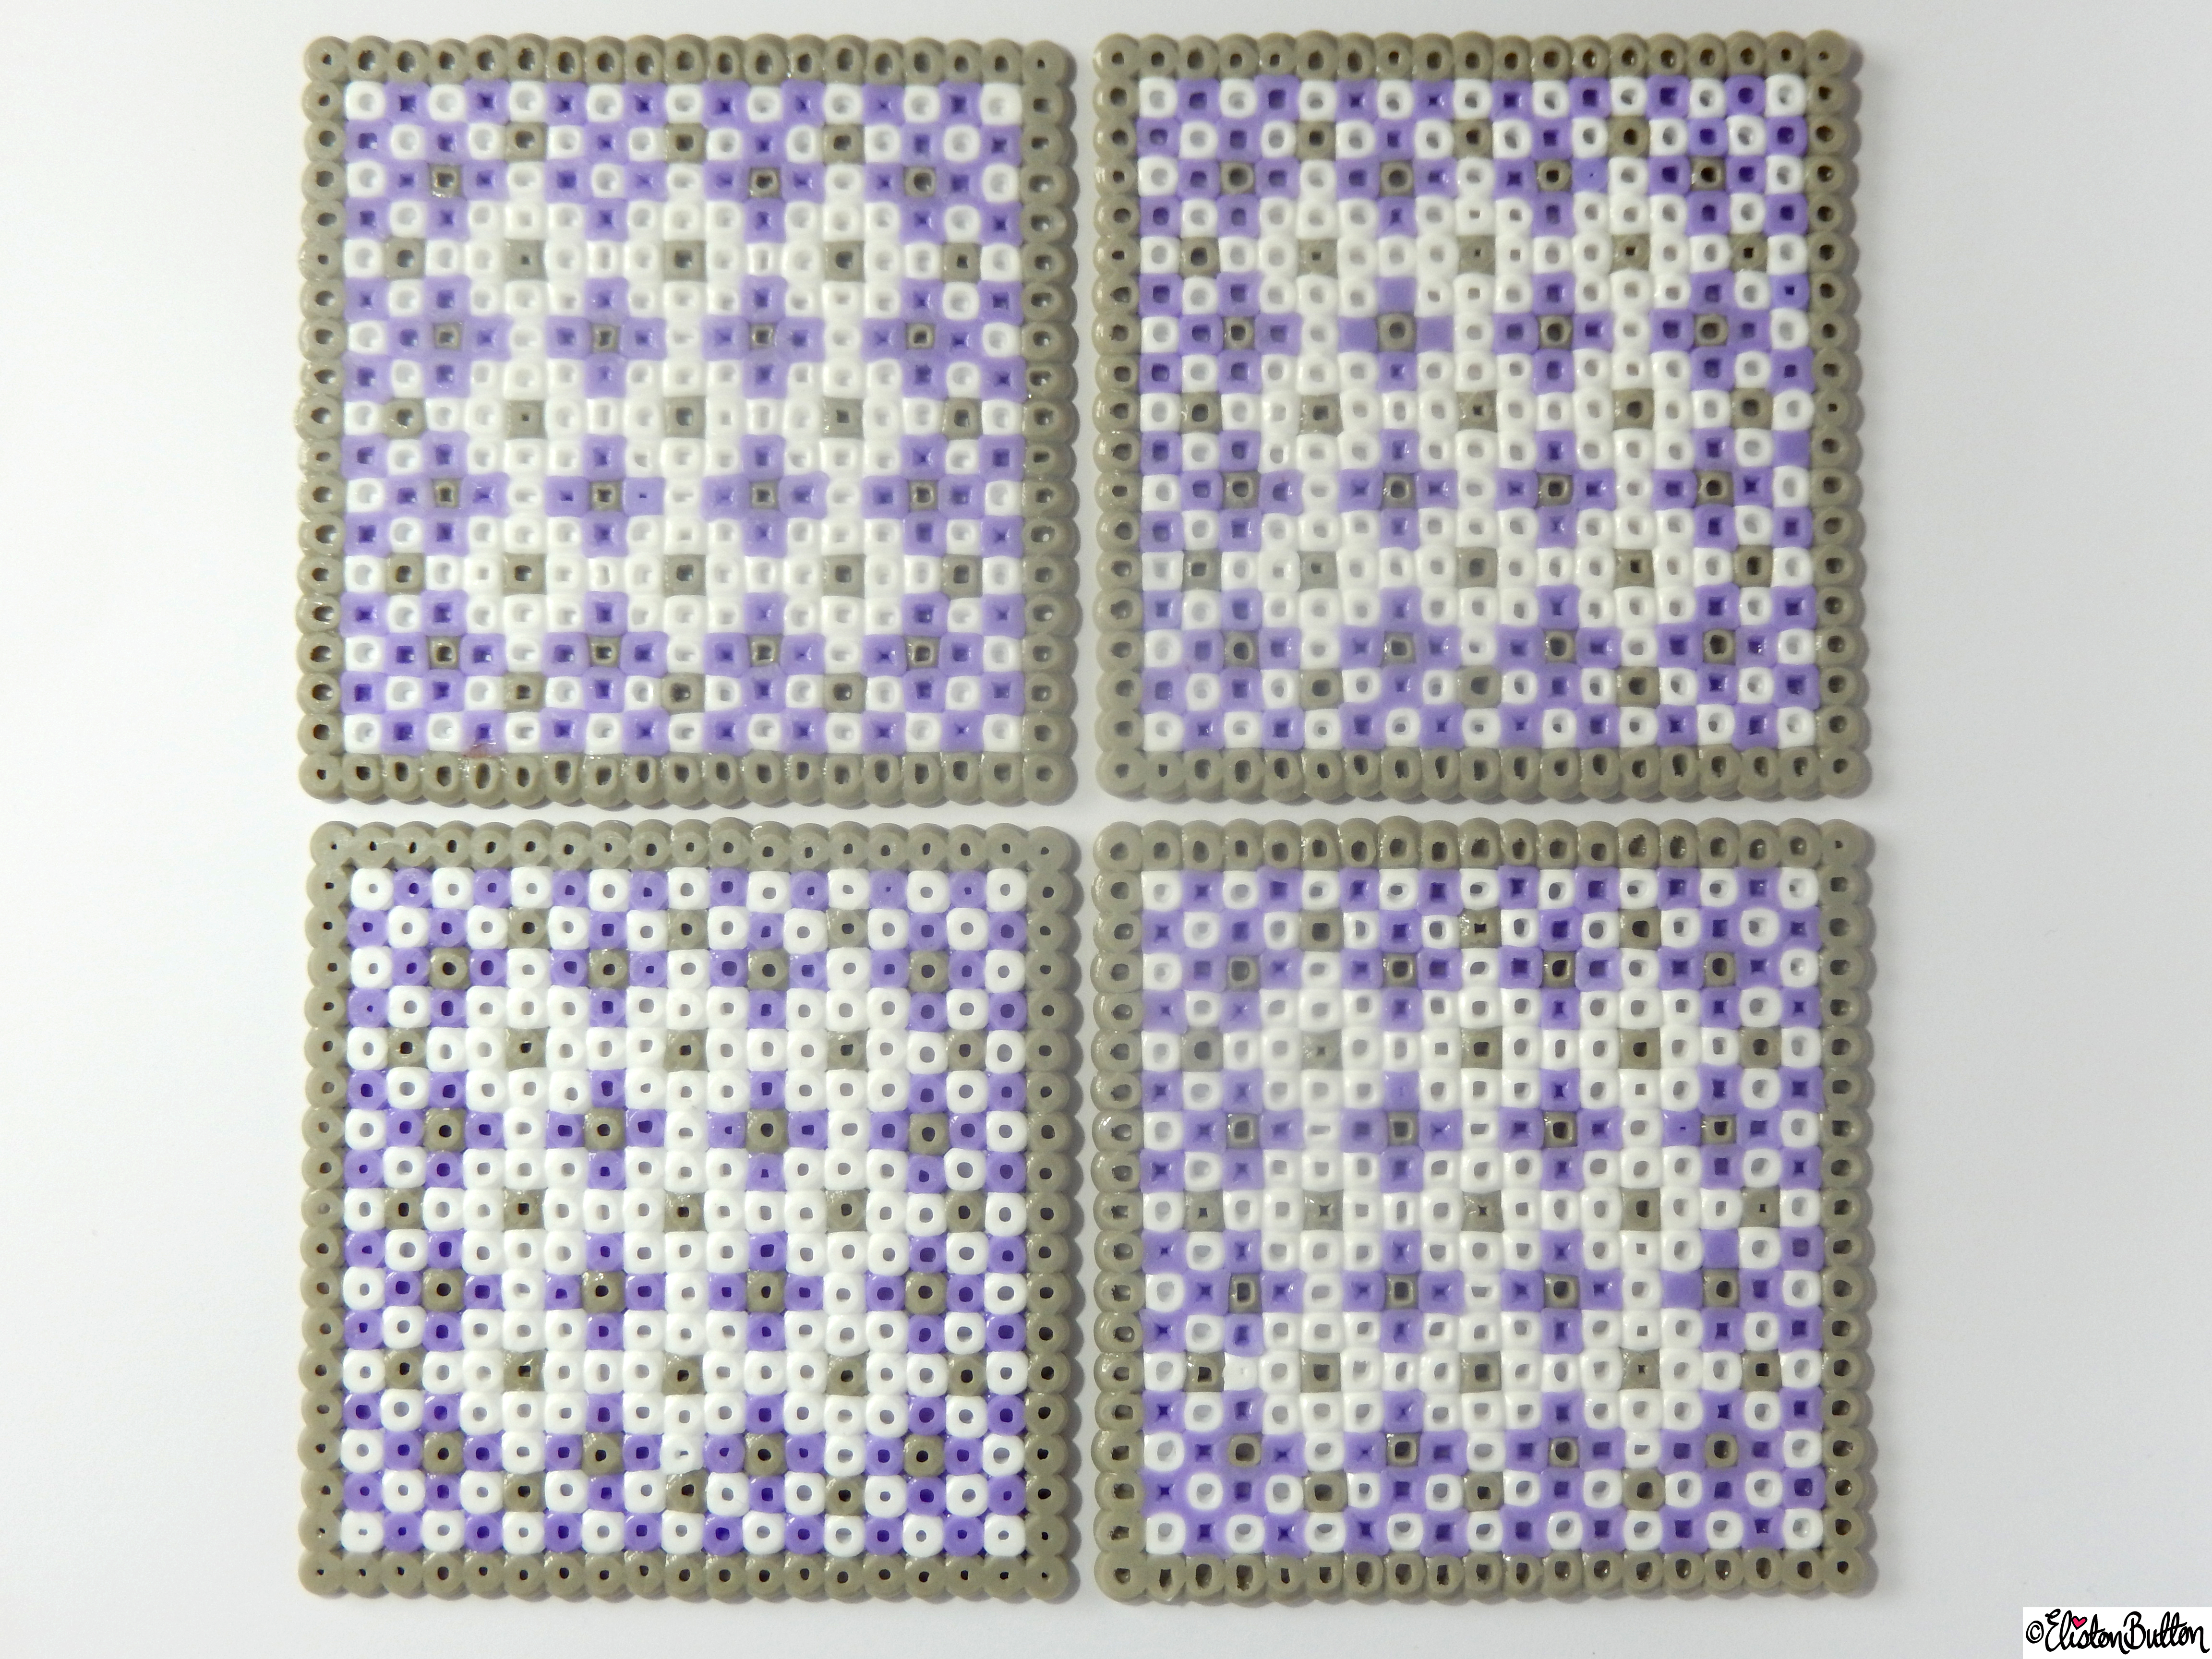 Square Picture and Hama Bead Patterned Coasters Set of Four - Create 28 - No. 9&10 - Picture Bead Coasters at www.elistonbutton.com - Eliston Button - That Crafty Kid – Art, Design, Craft & Adventure.